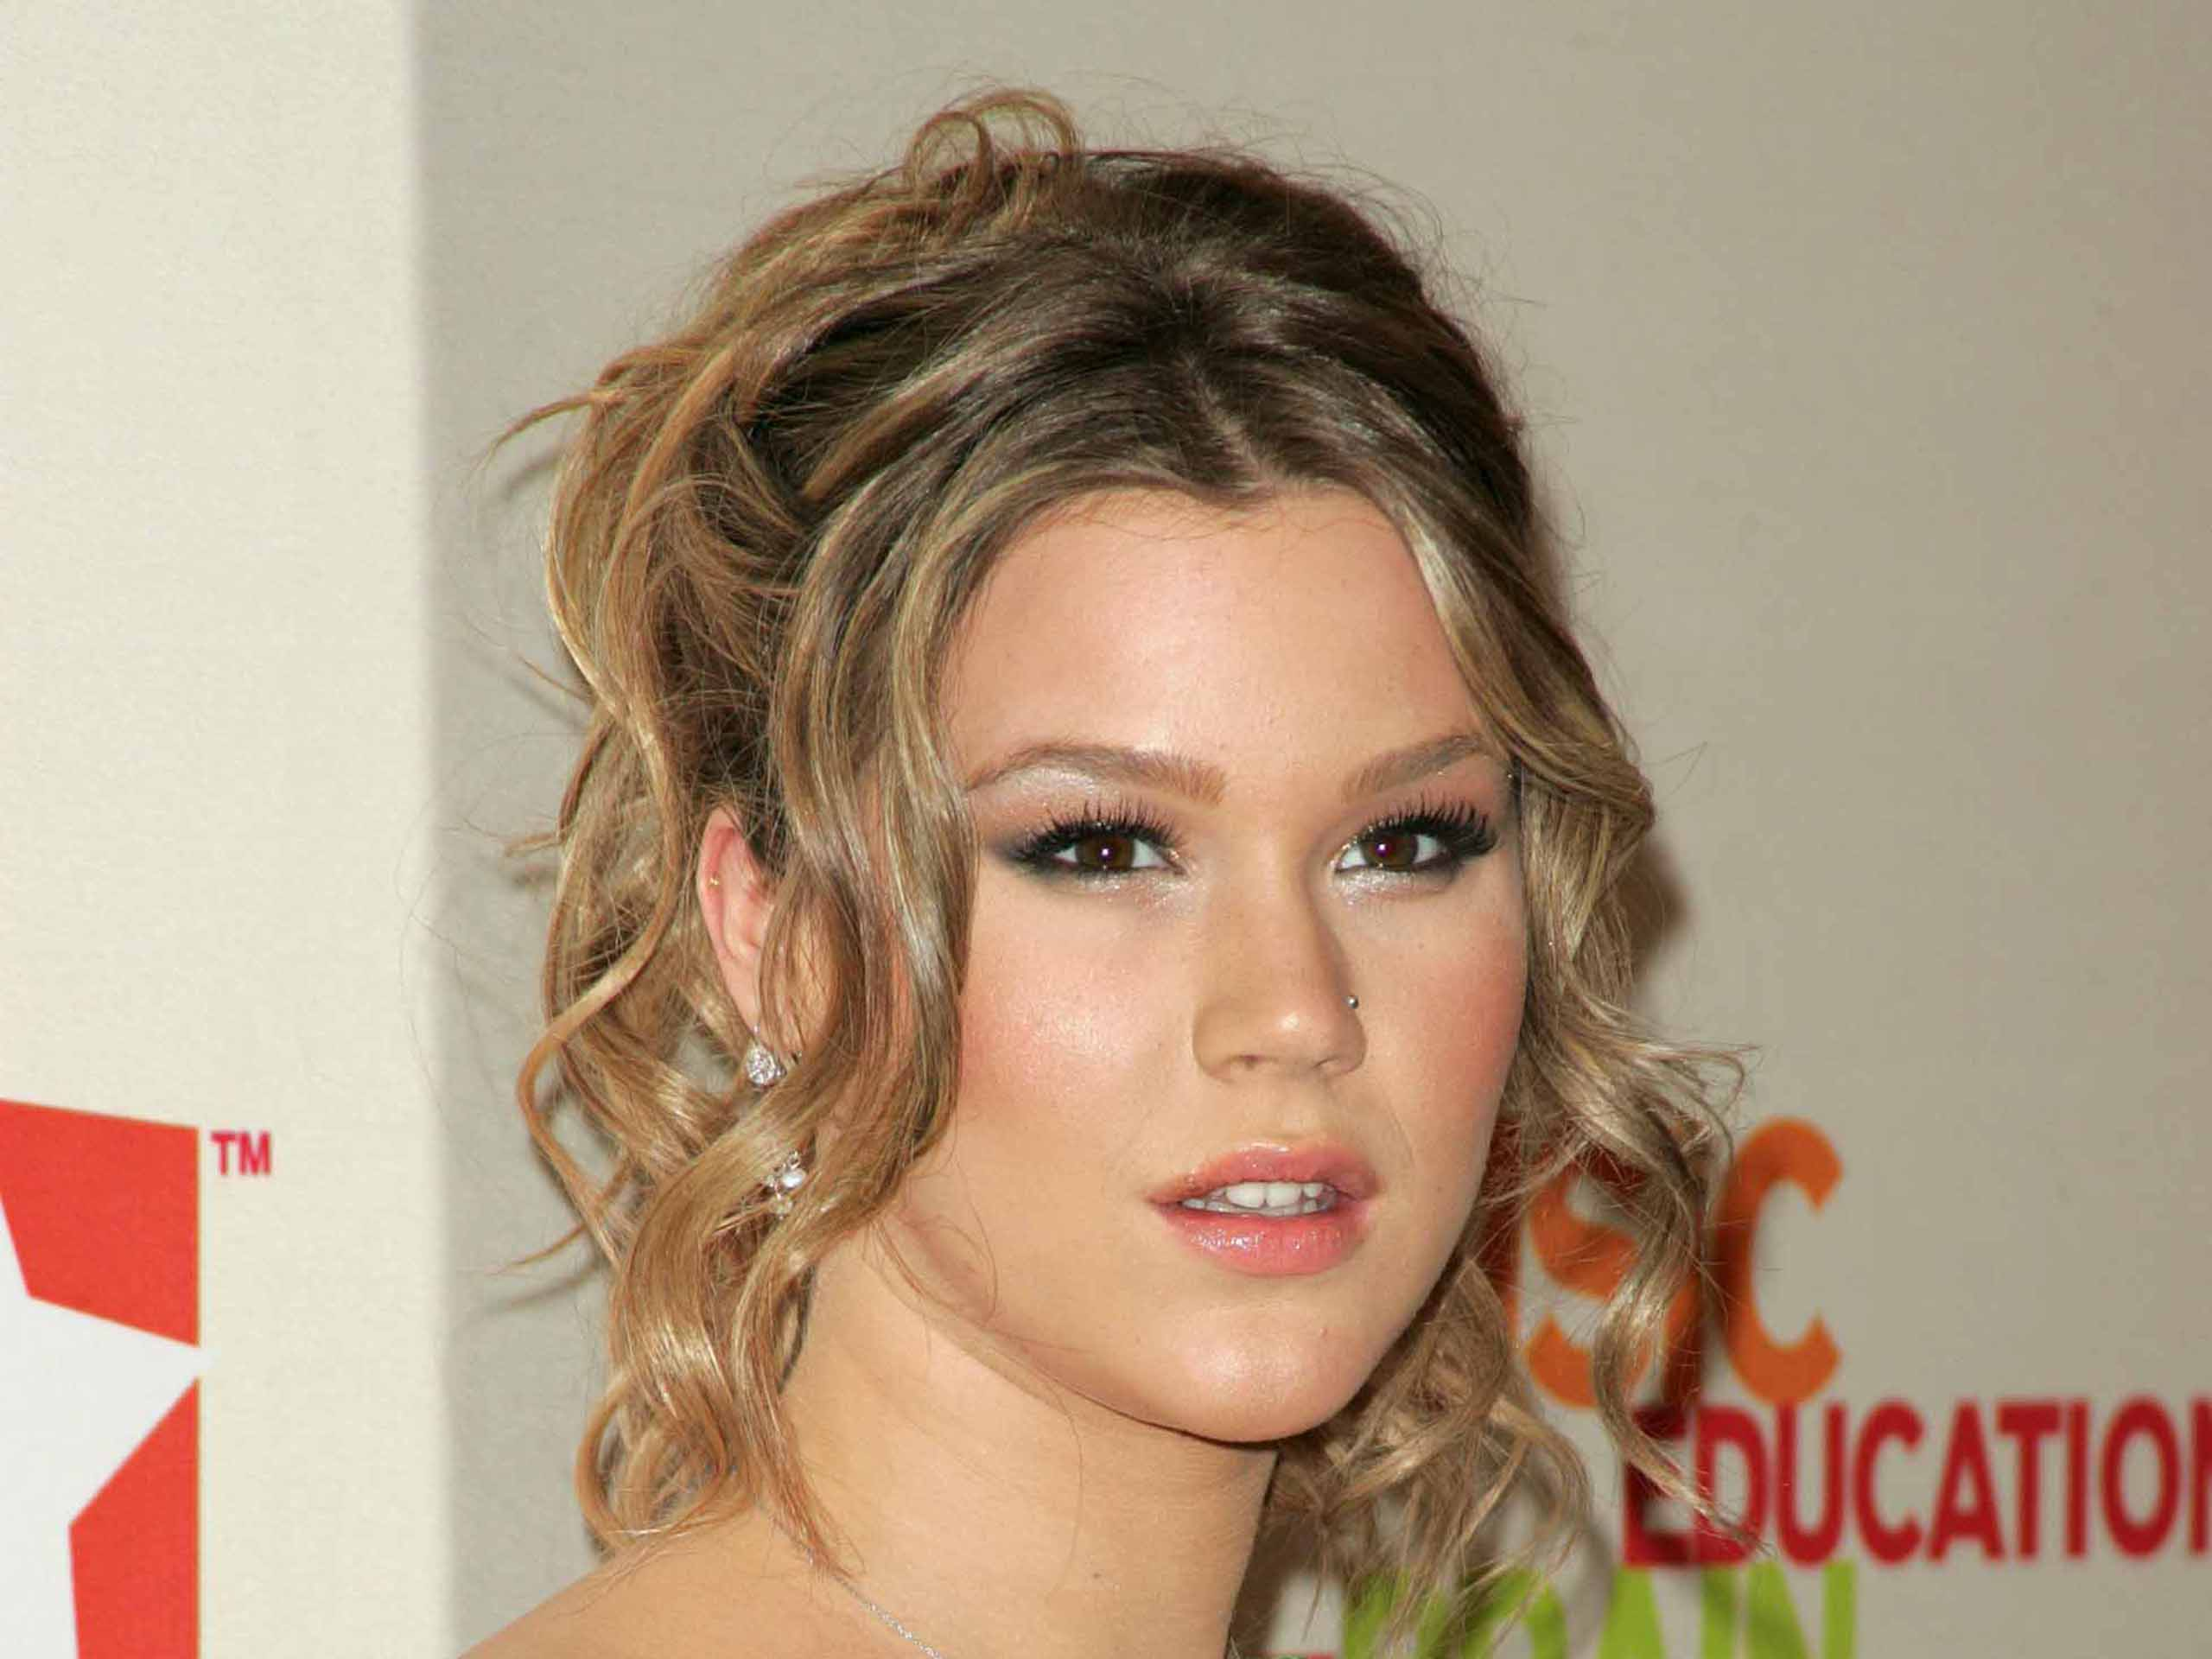 Celebrites Joss Stone nude (57 photo), Tits, Paparazzi, Boobs, lingerie 2020